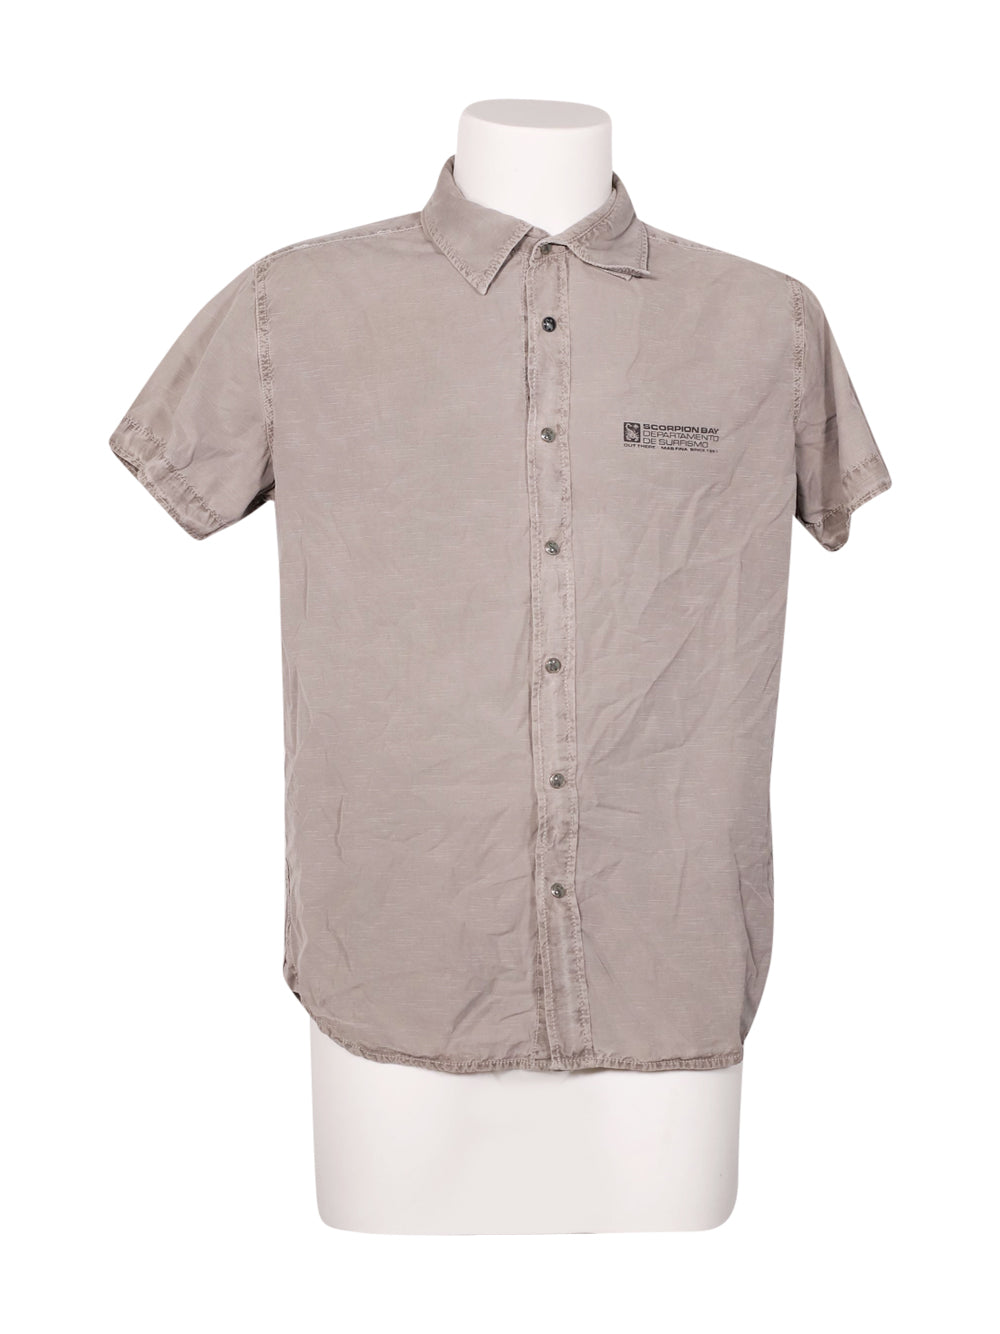 Front photo of Preloved Scorpion Bay Grey Man's shirt - size 40/L